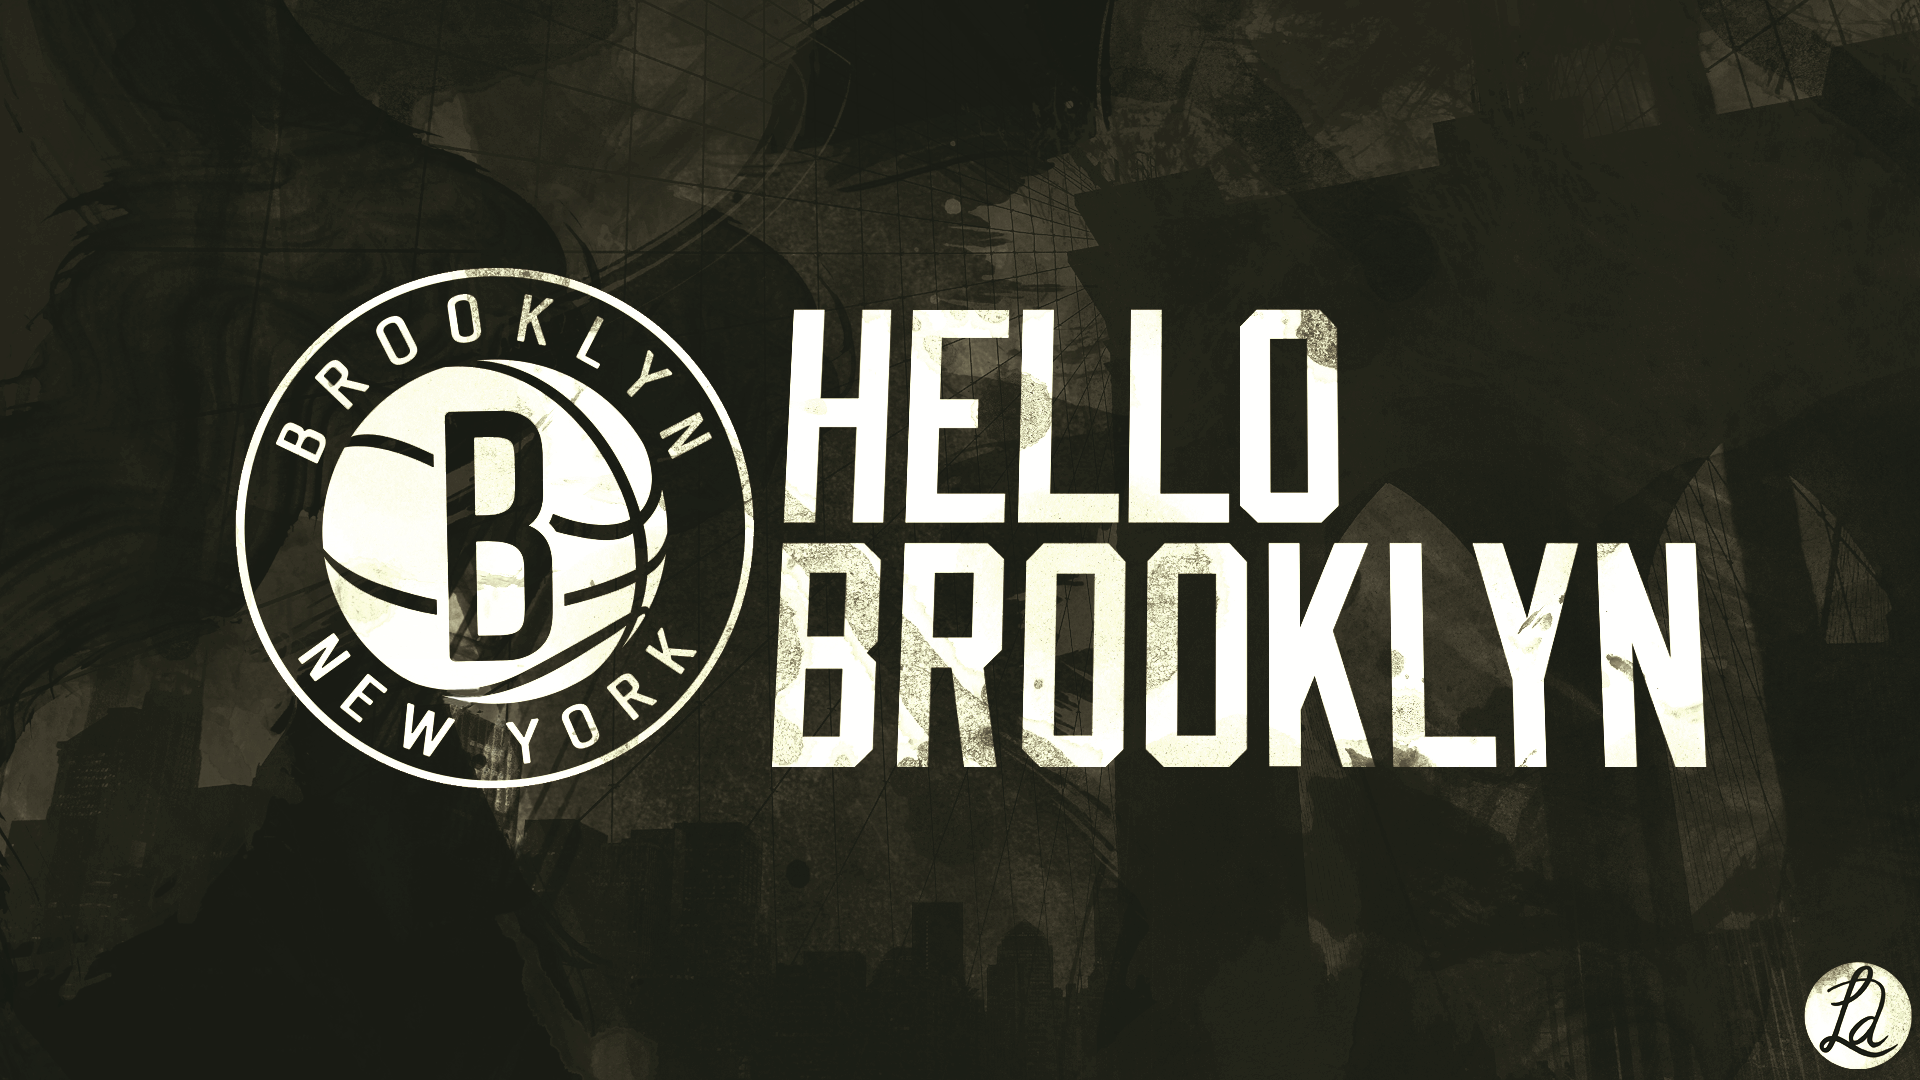 Hello Brooklyn by lucasitodesign Download from DeviantART 1920x1080